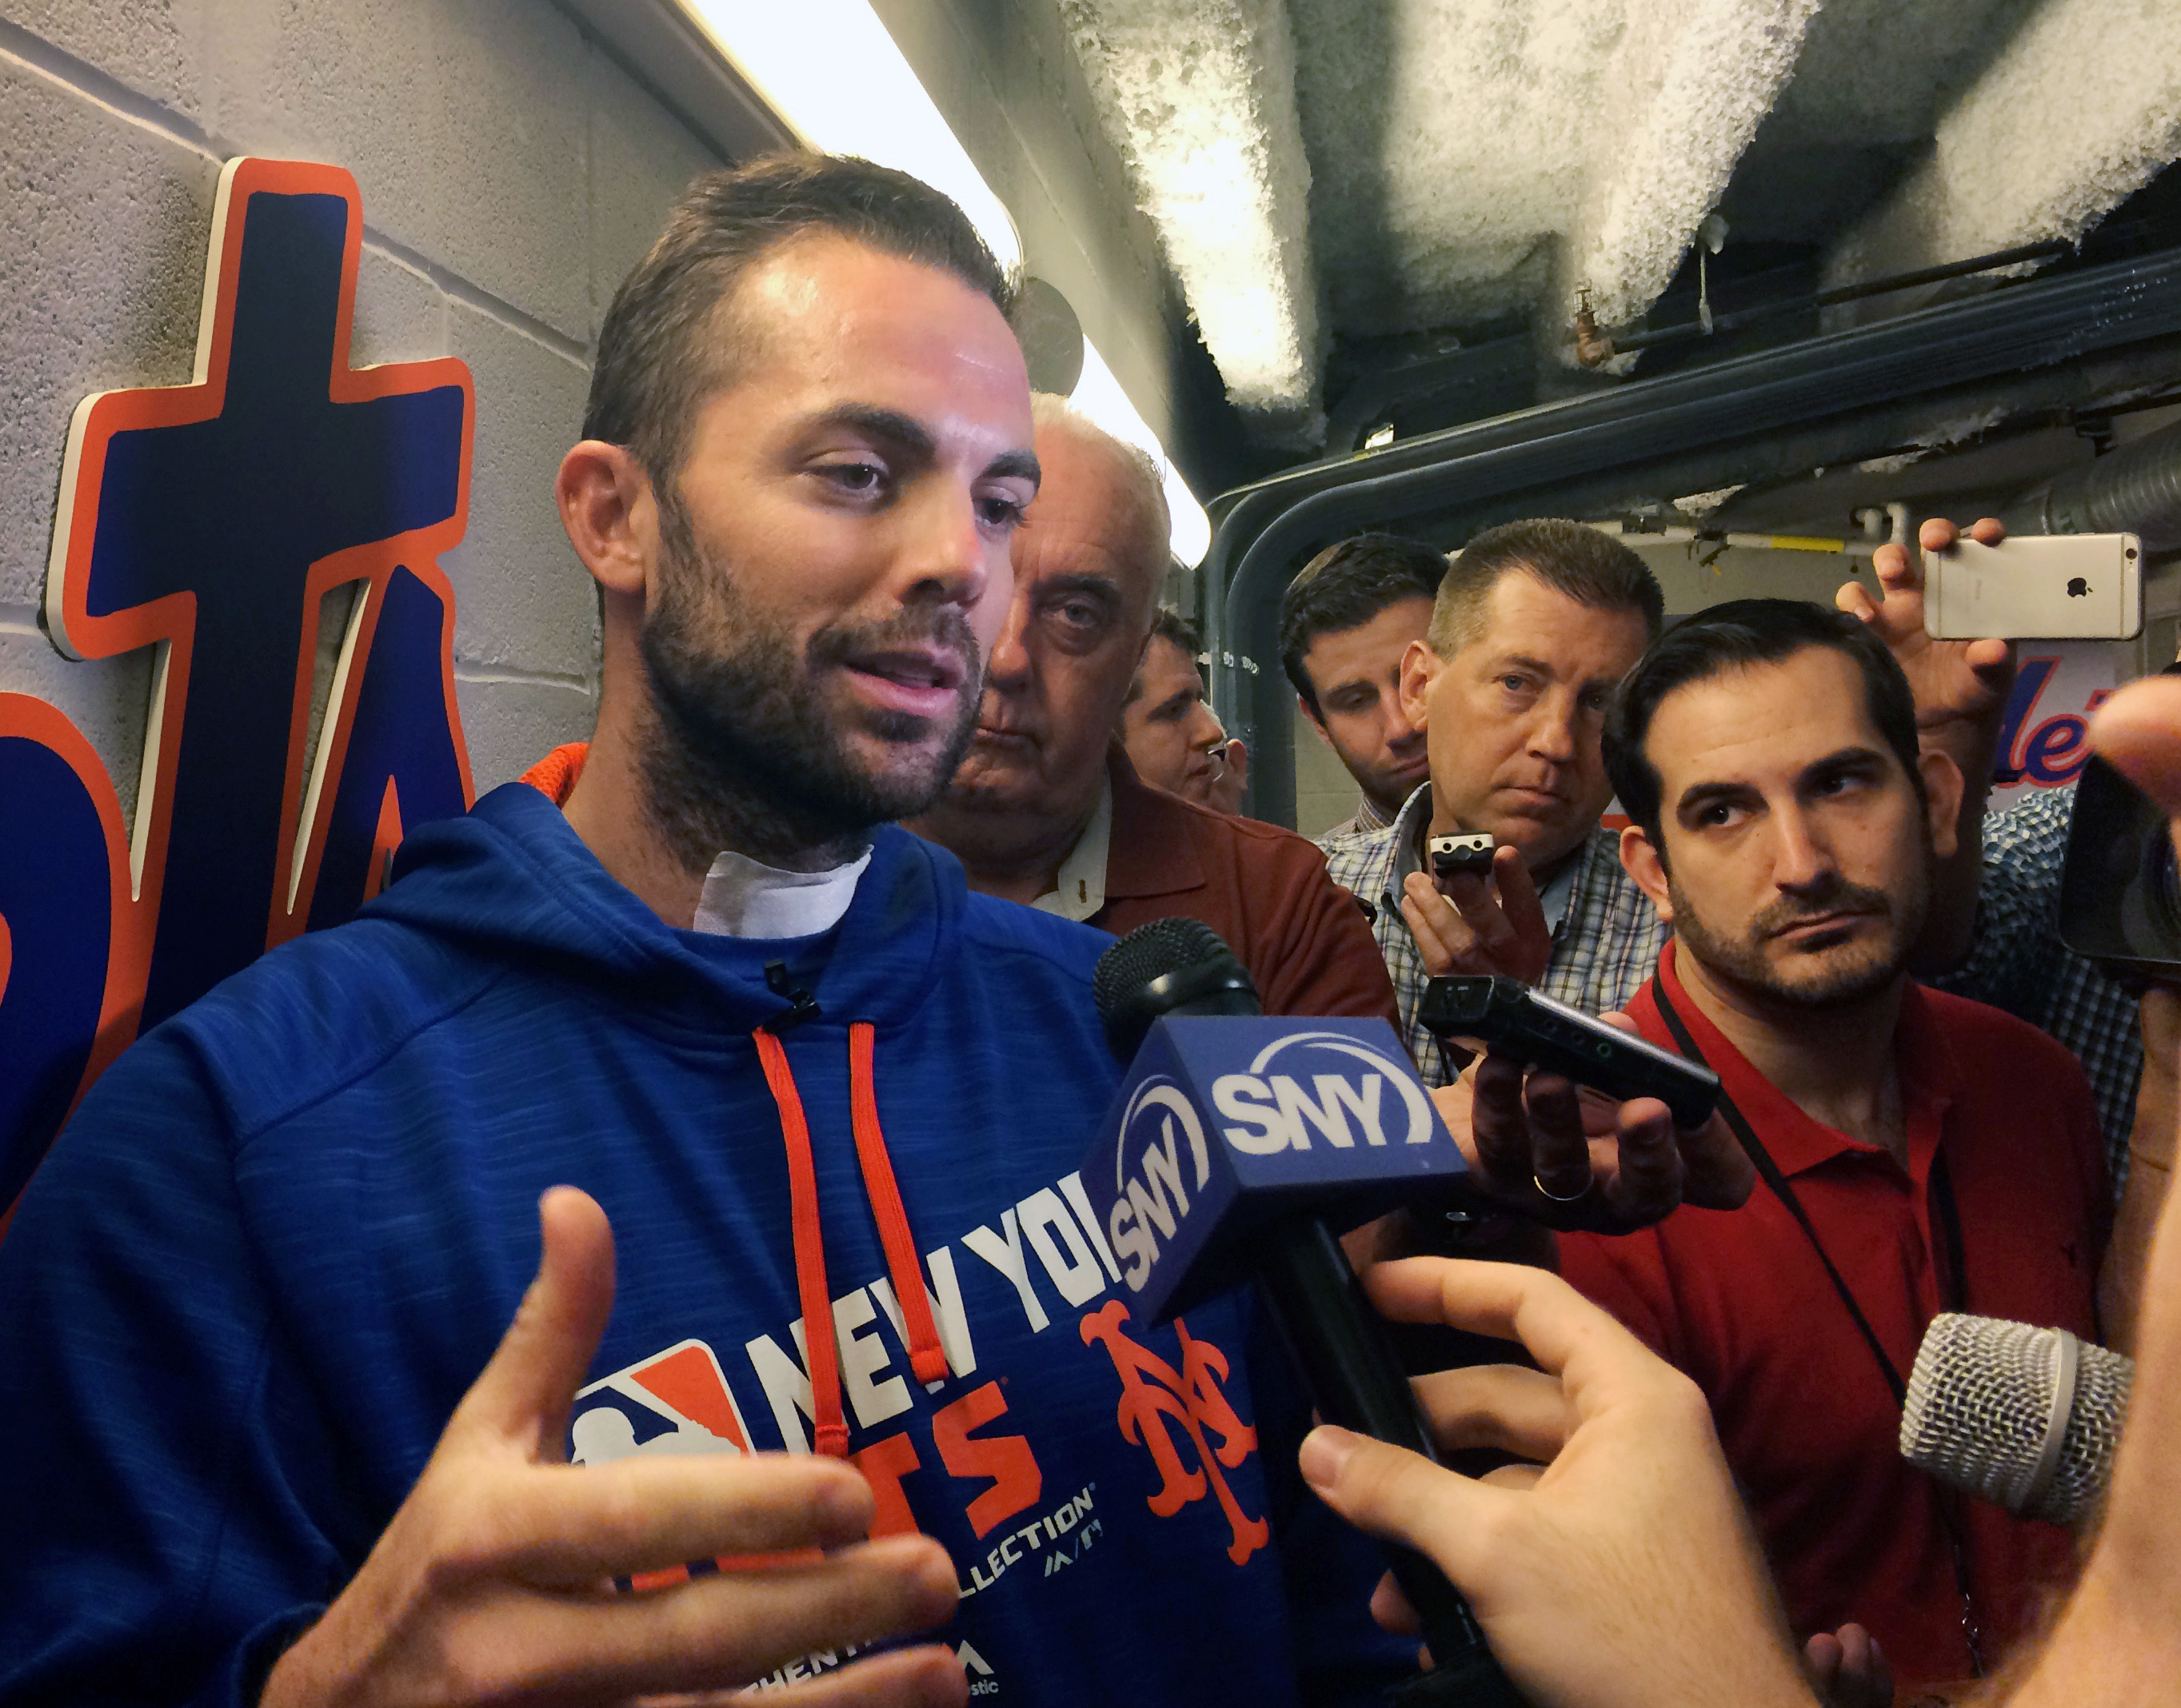 New York Mets' third baseman David Wright speaks to the media before a baseball game against the Chicago Cubs at Citi Field in New York, Friday, July 1, 2016. Wright made his first public appearance at Citi Field since undergoing neck surgery to repair a